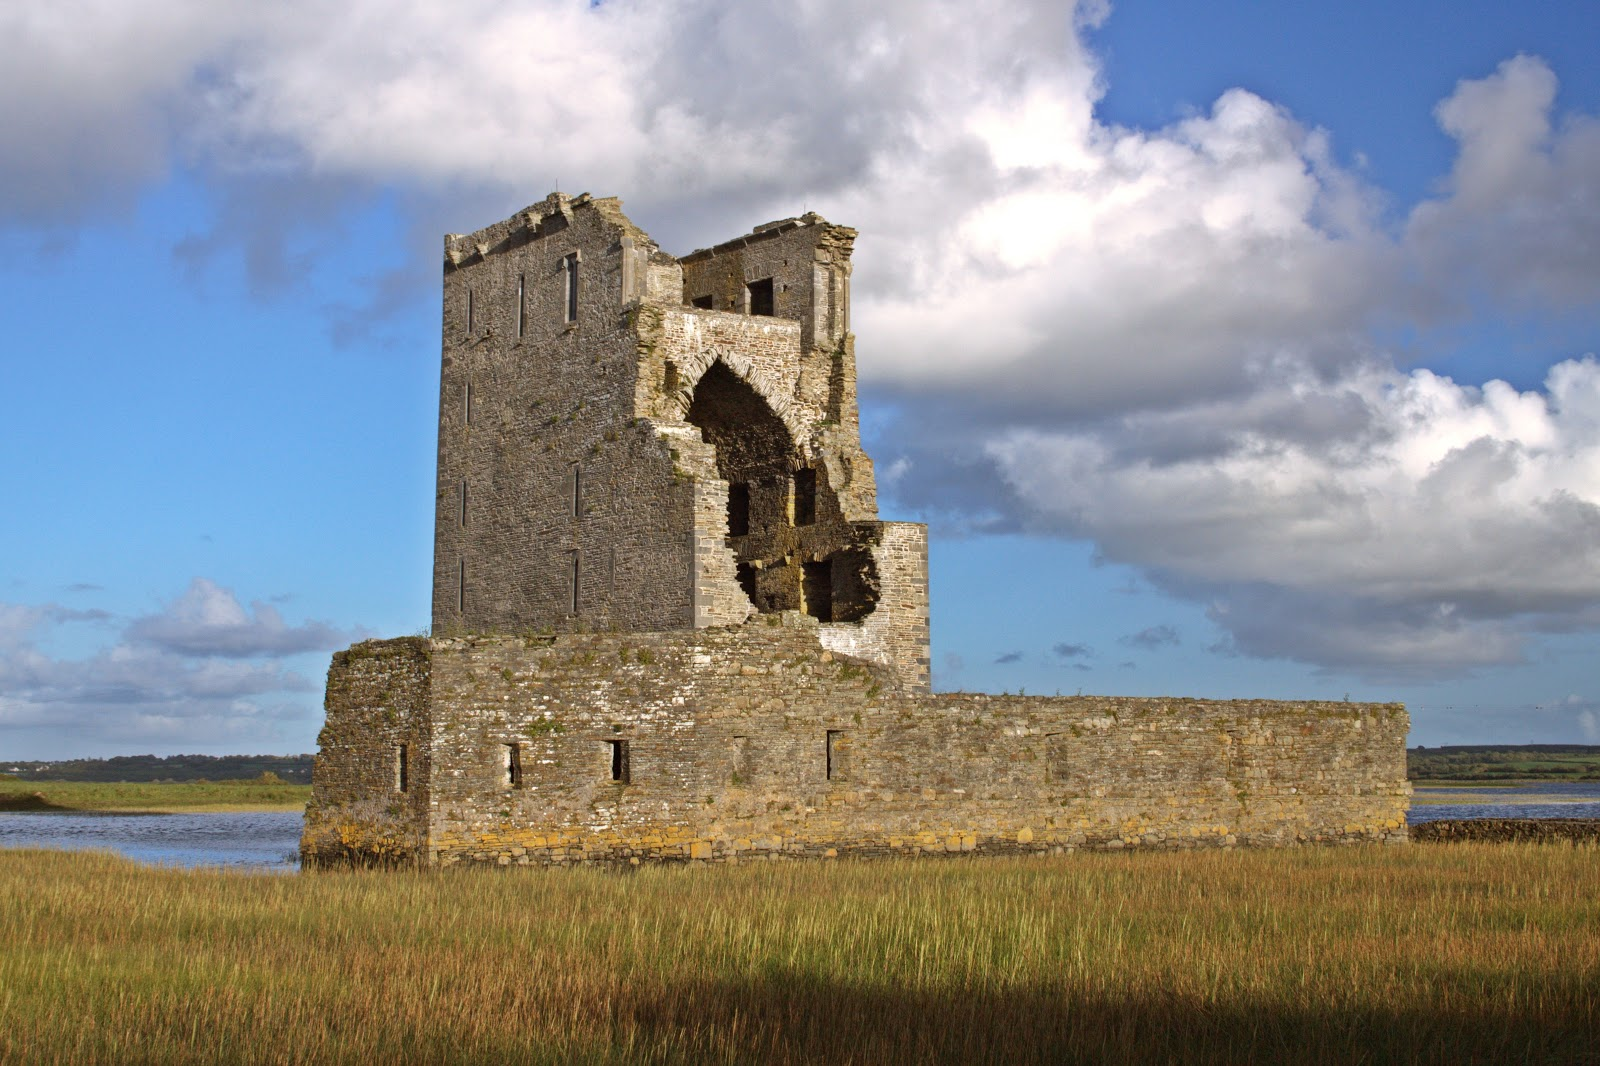 Carrigafoyle Castle, County Kerry